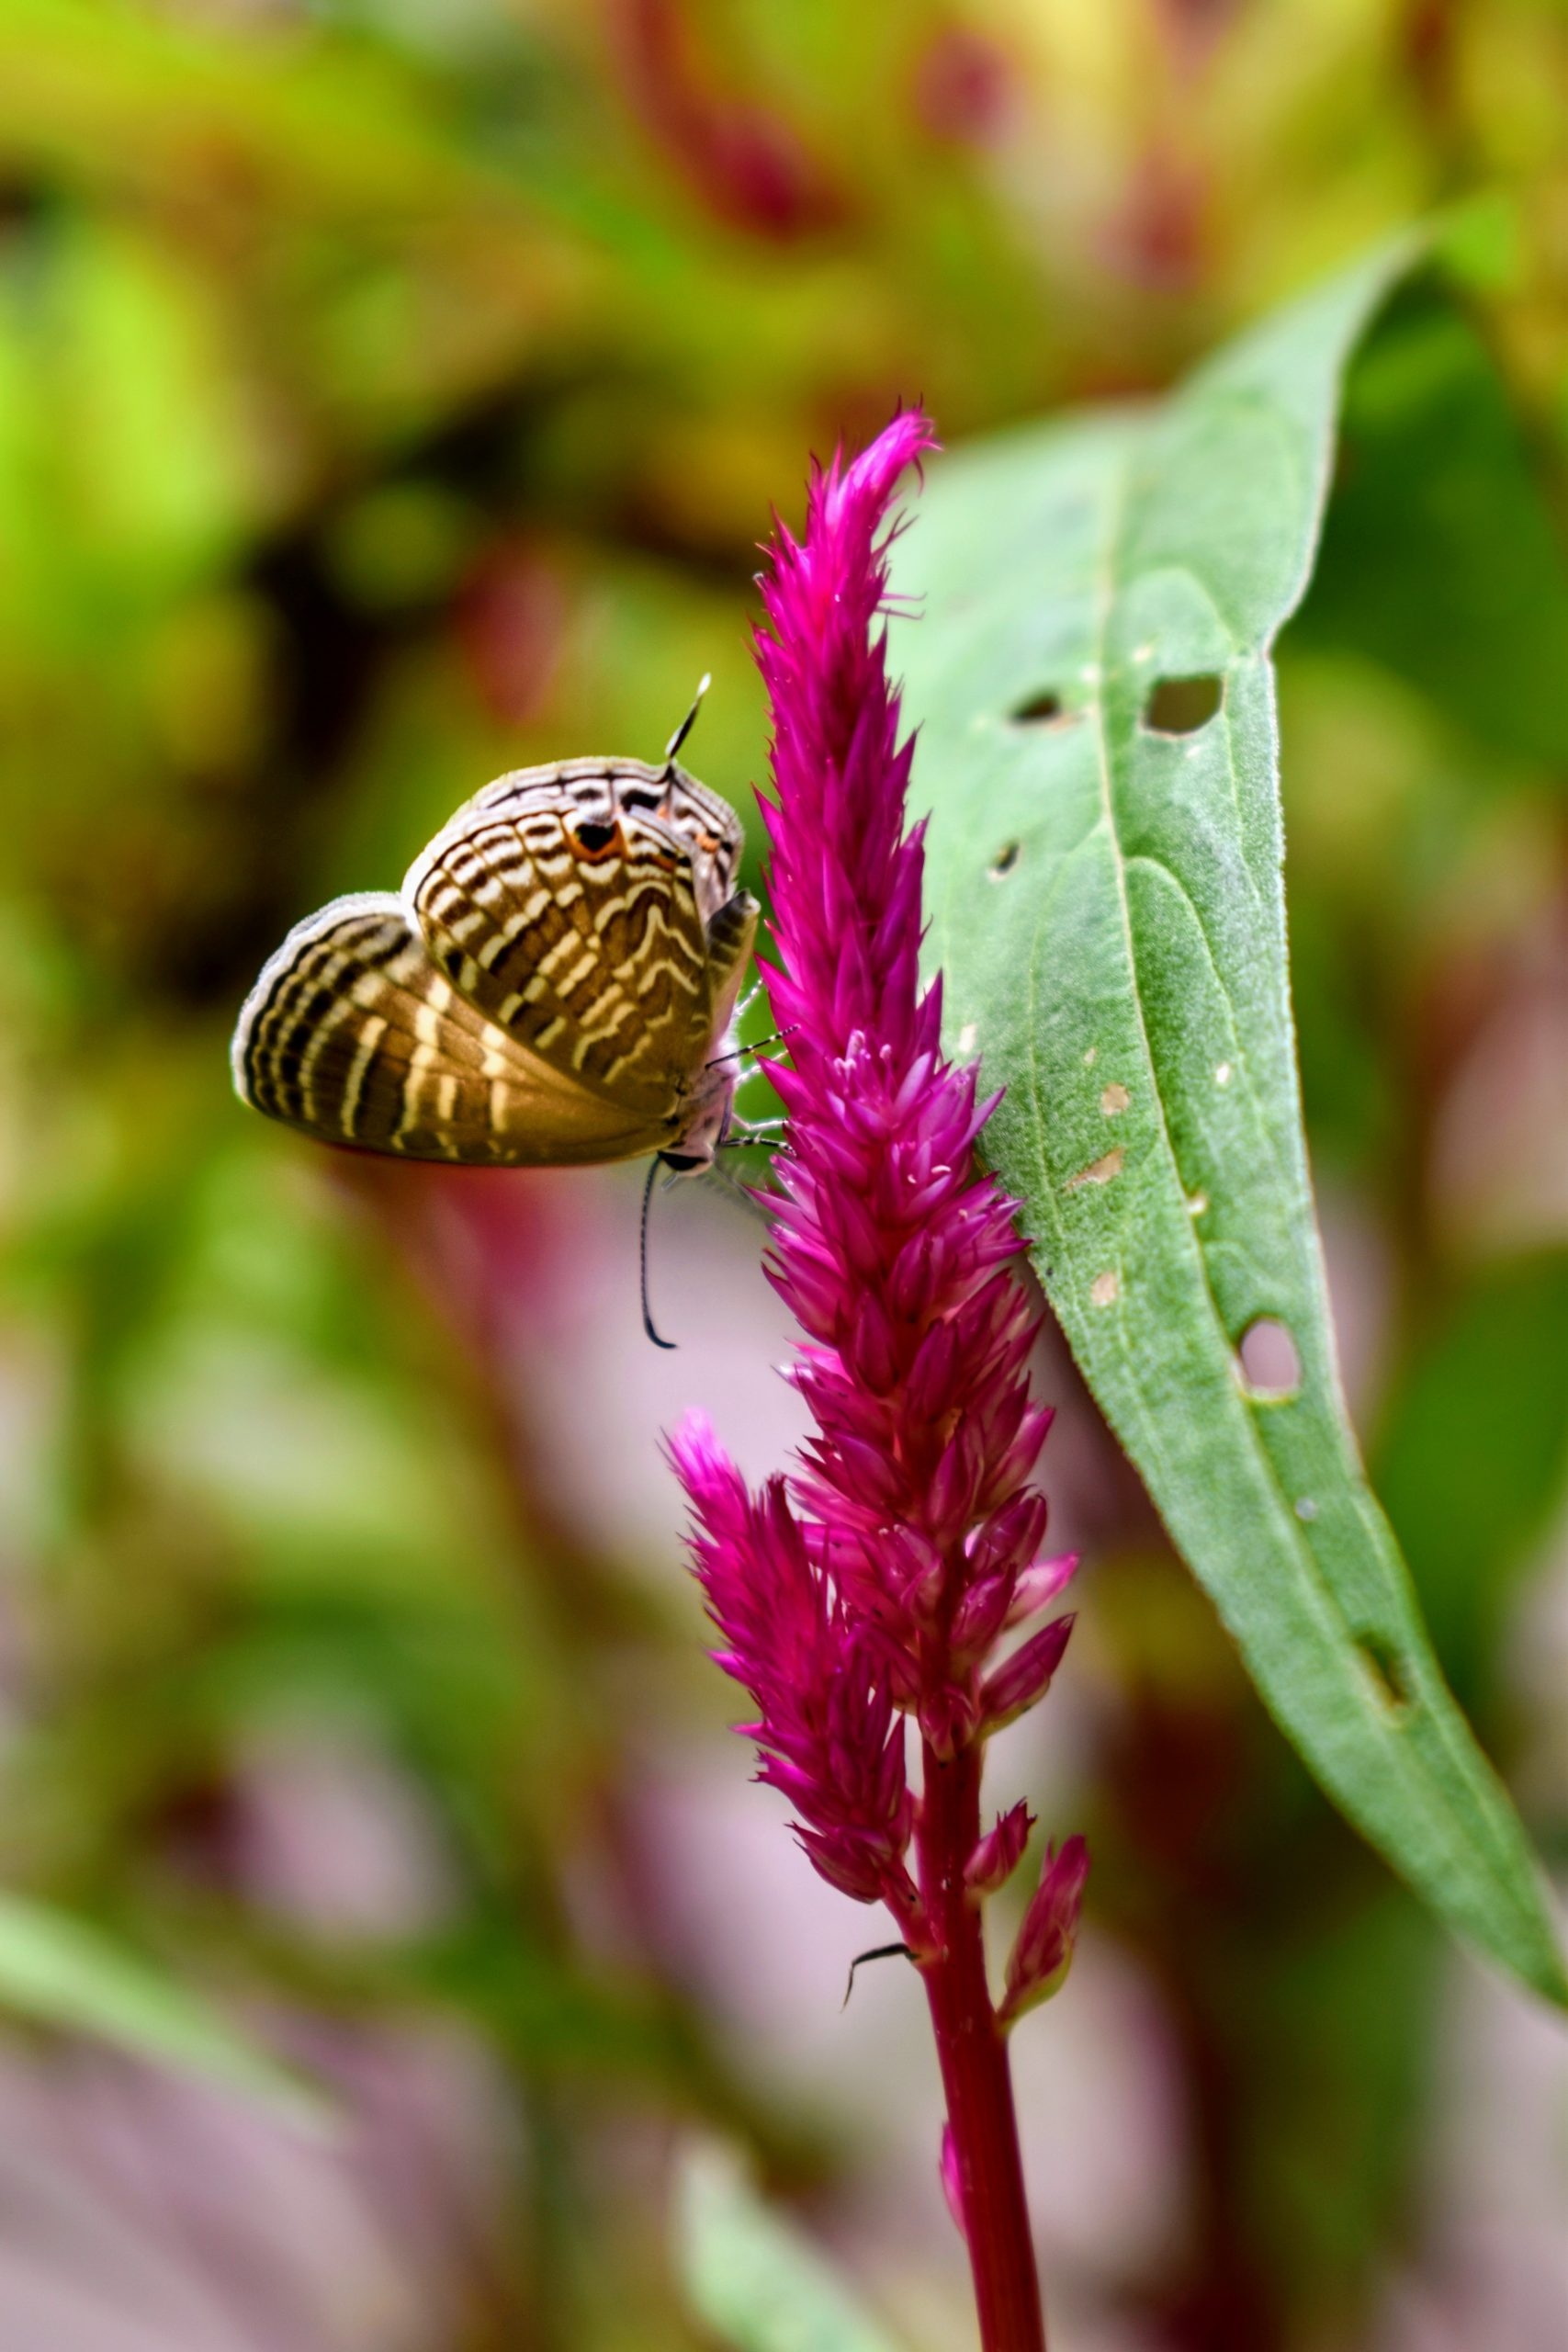 A butterfly sitting on a plant